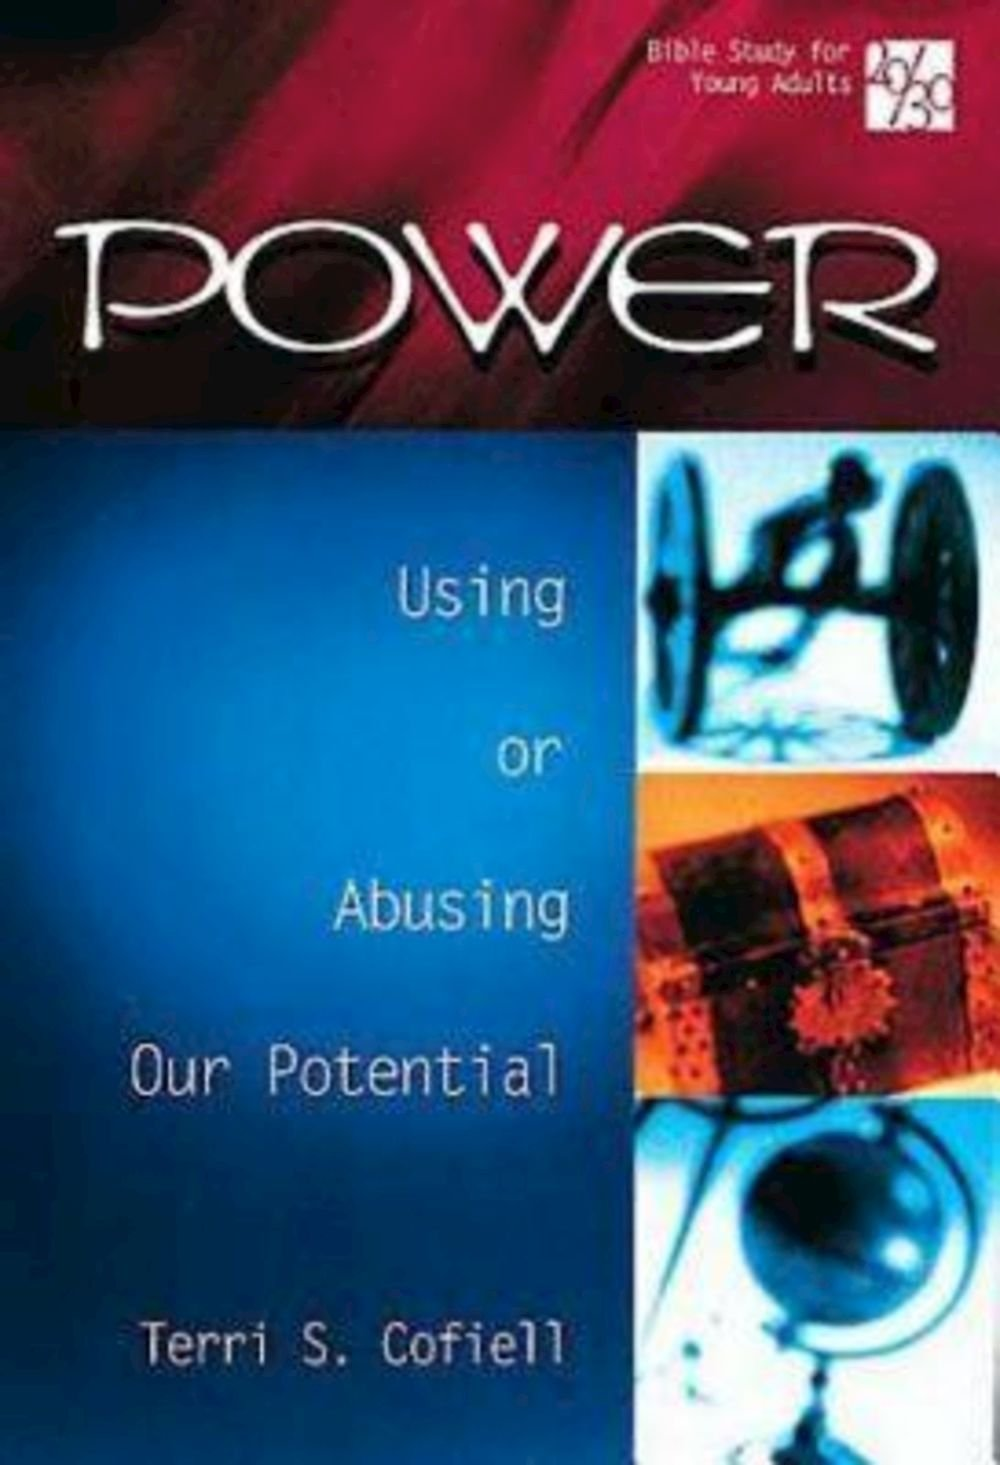 Download 20/30 Bible Study for Young Adults: Power: Using or Abusing Our Potential PDF